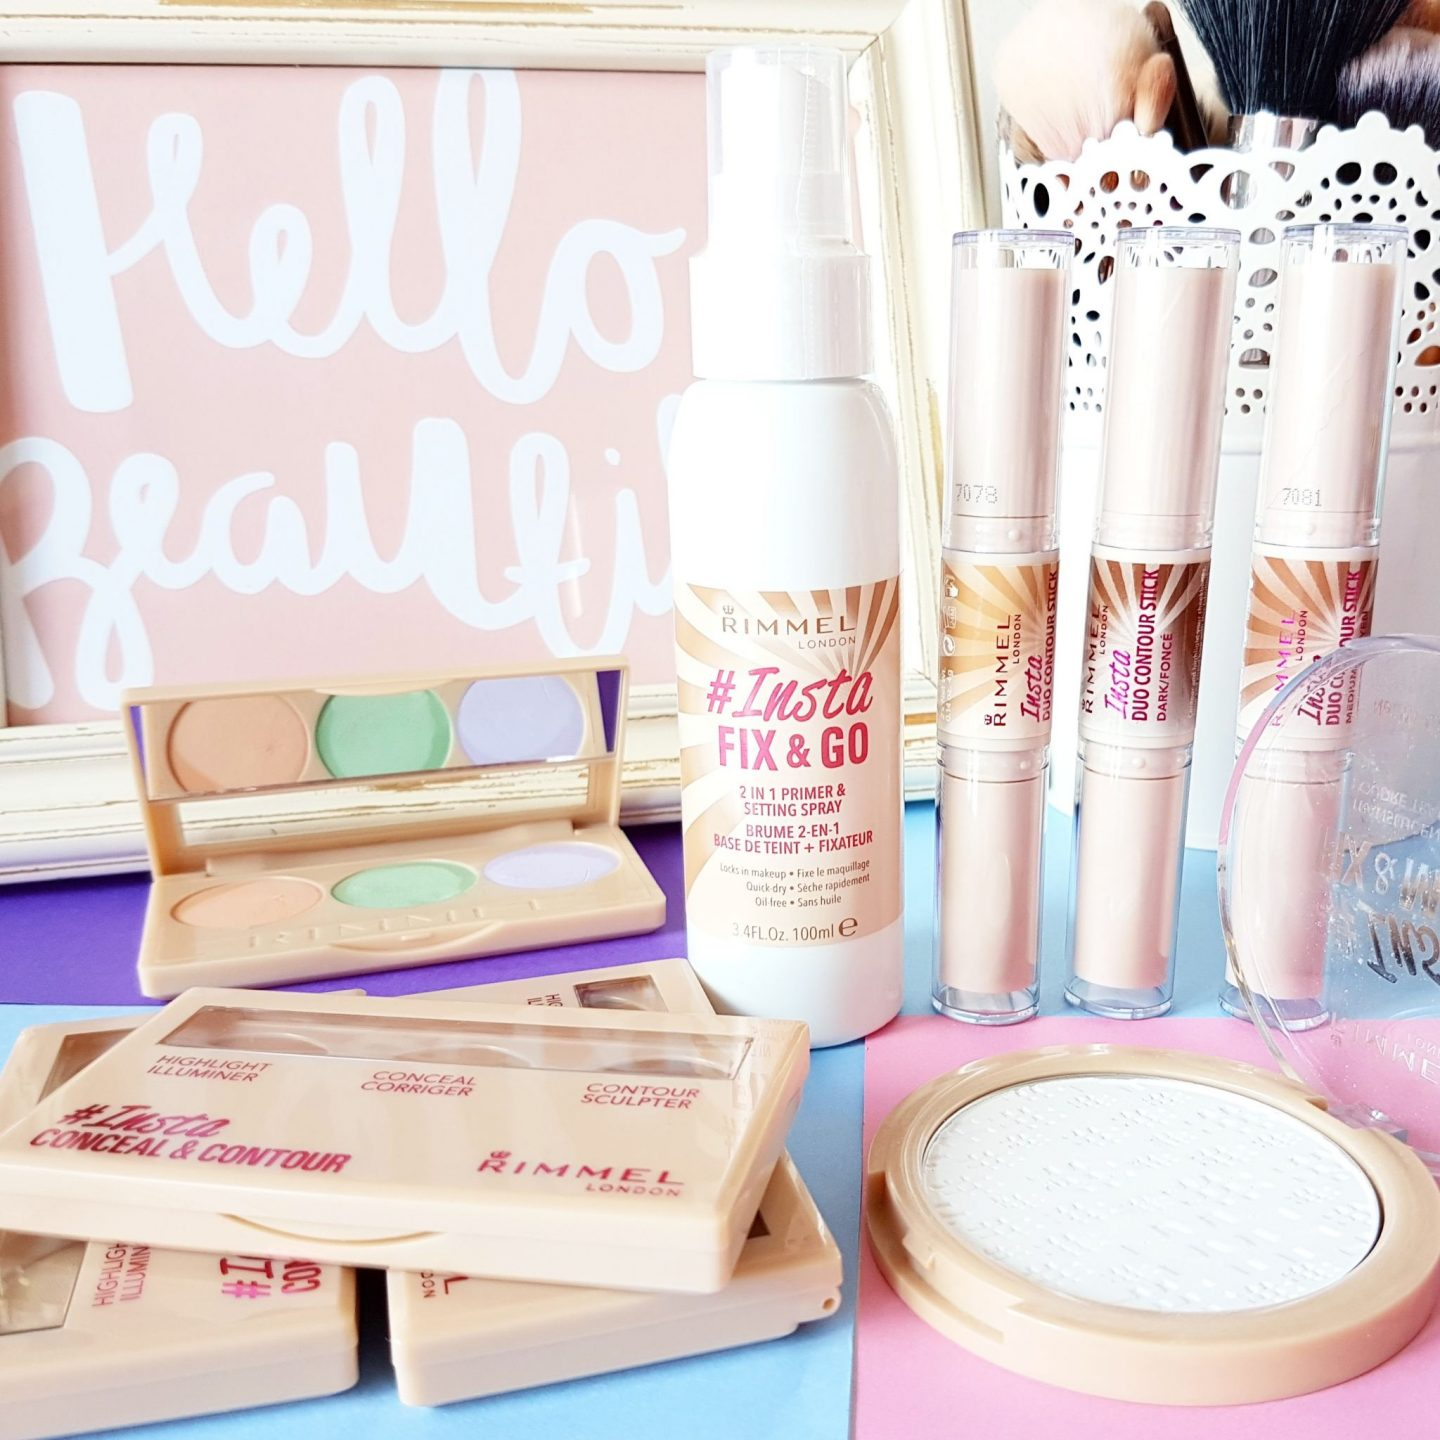 First Impressions of the Rimmel #Insta Collection